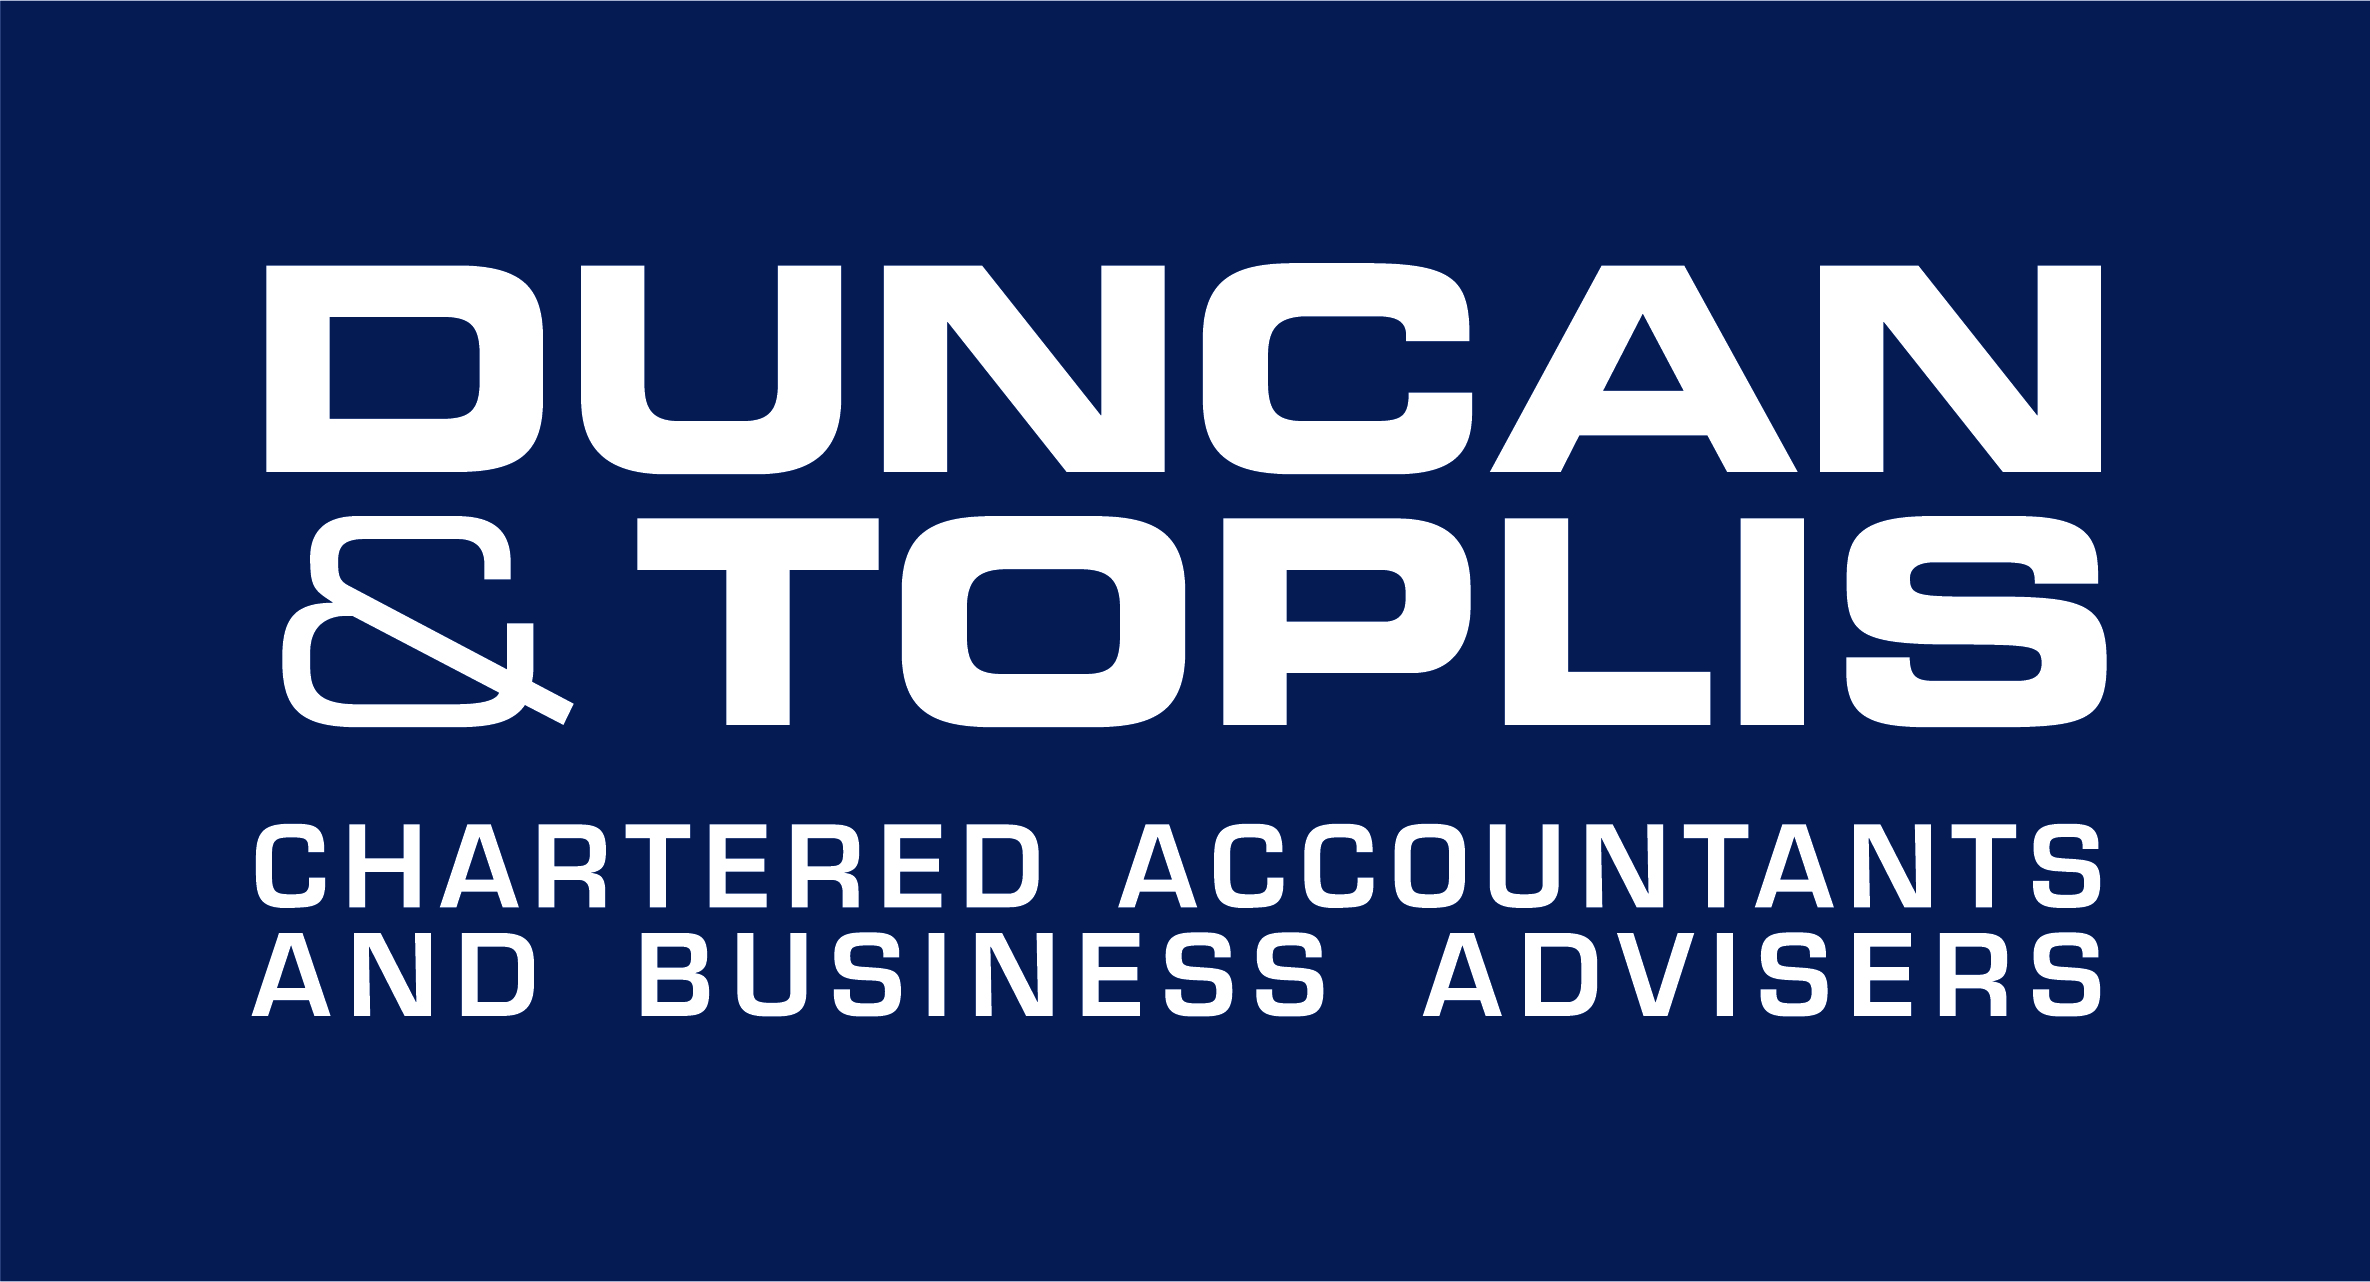 Duncan & Toplis are delighted to be supporting Love Business for a second year by sponsoring the VIP Lounge.